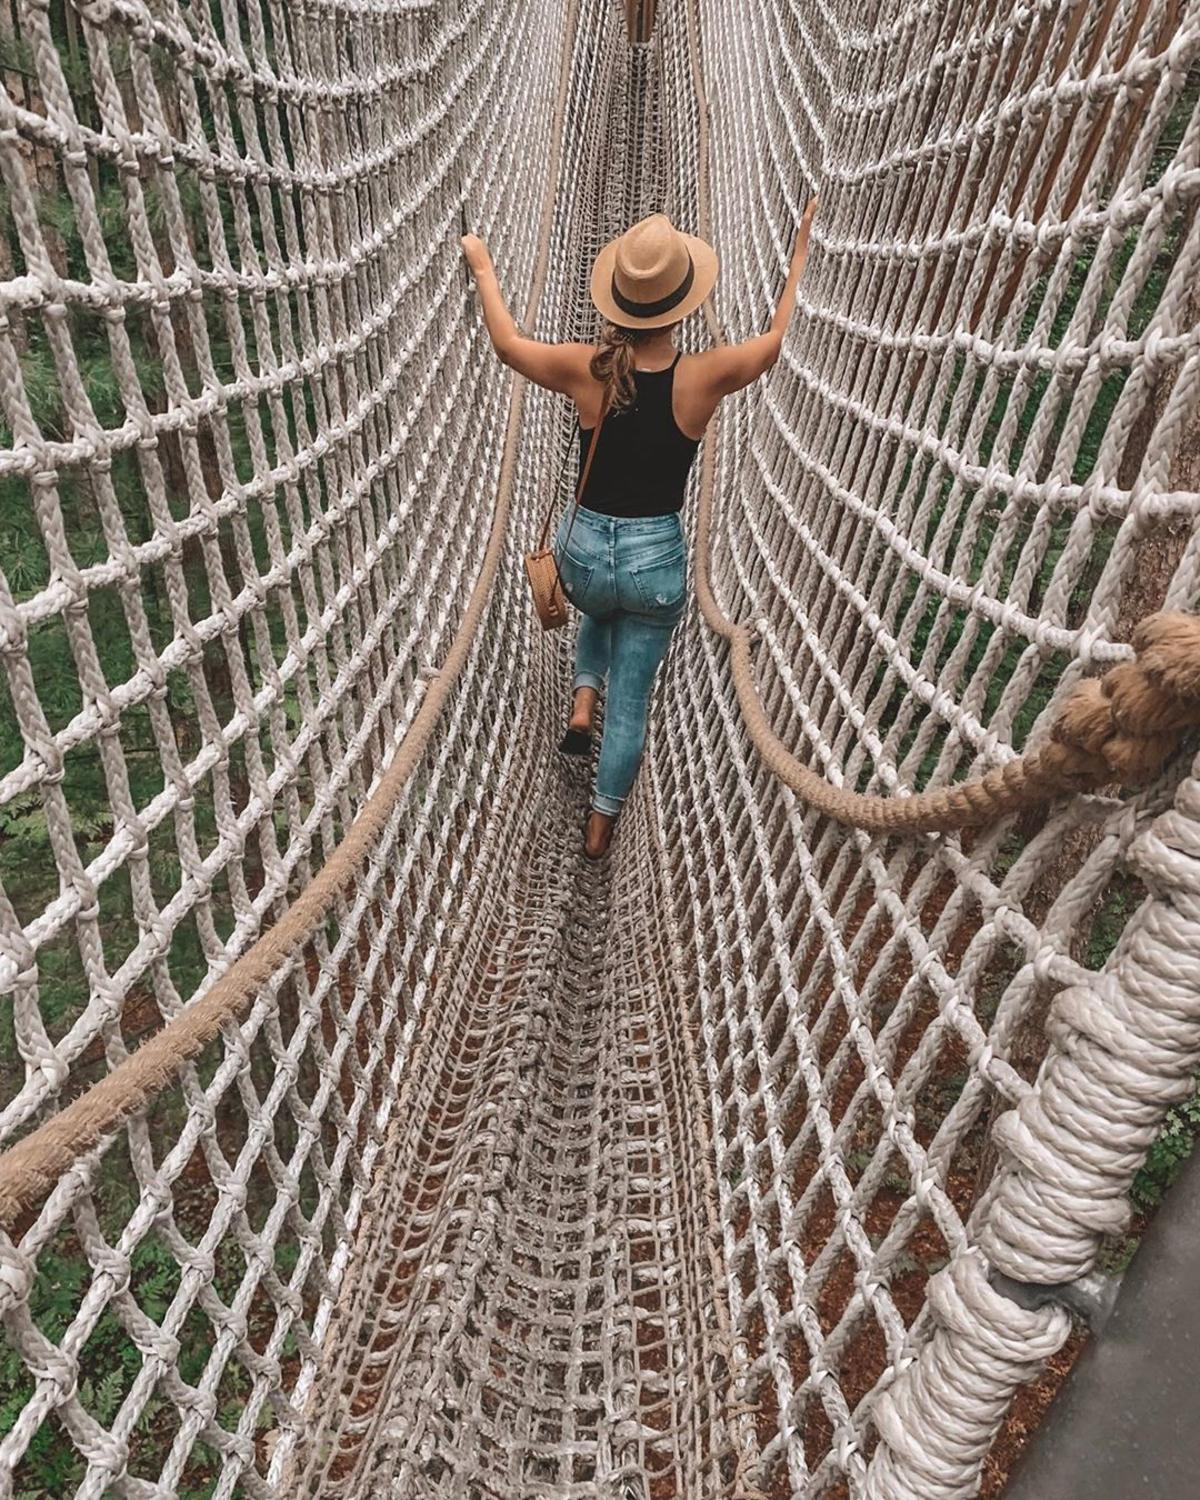 Young woman climbing across the cargo net bridge at Whiting Forest of Dow Gardens